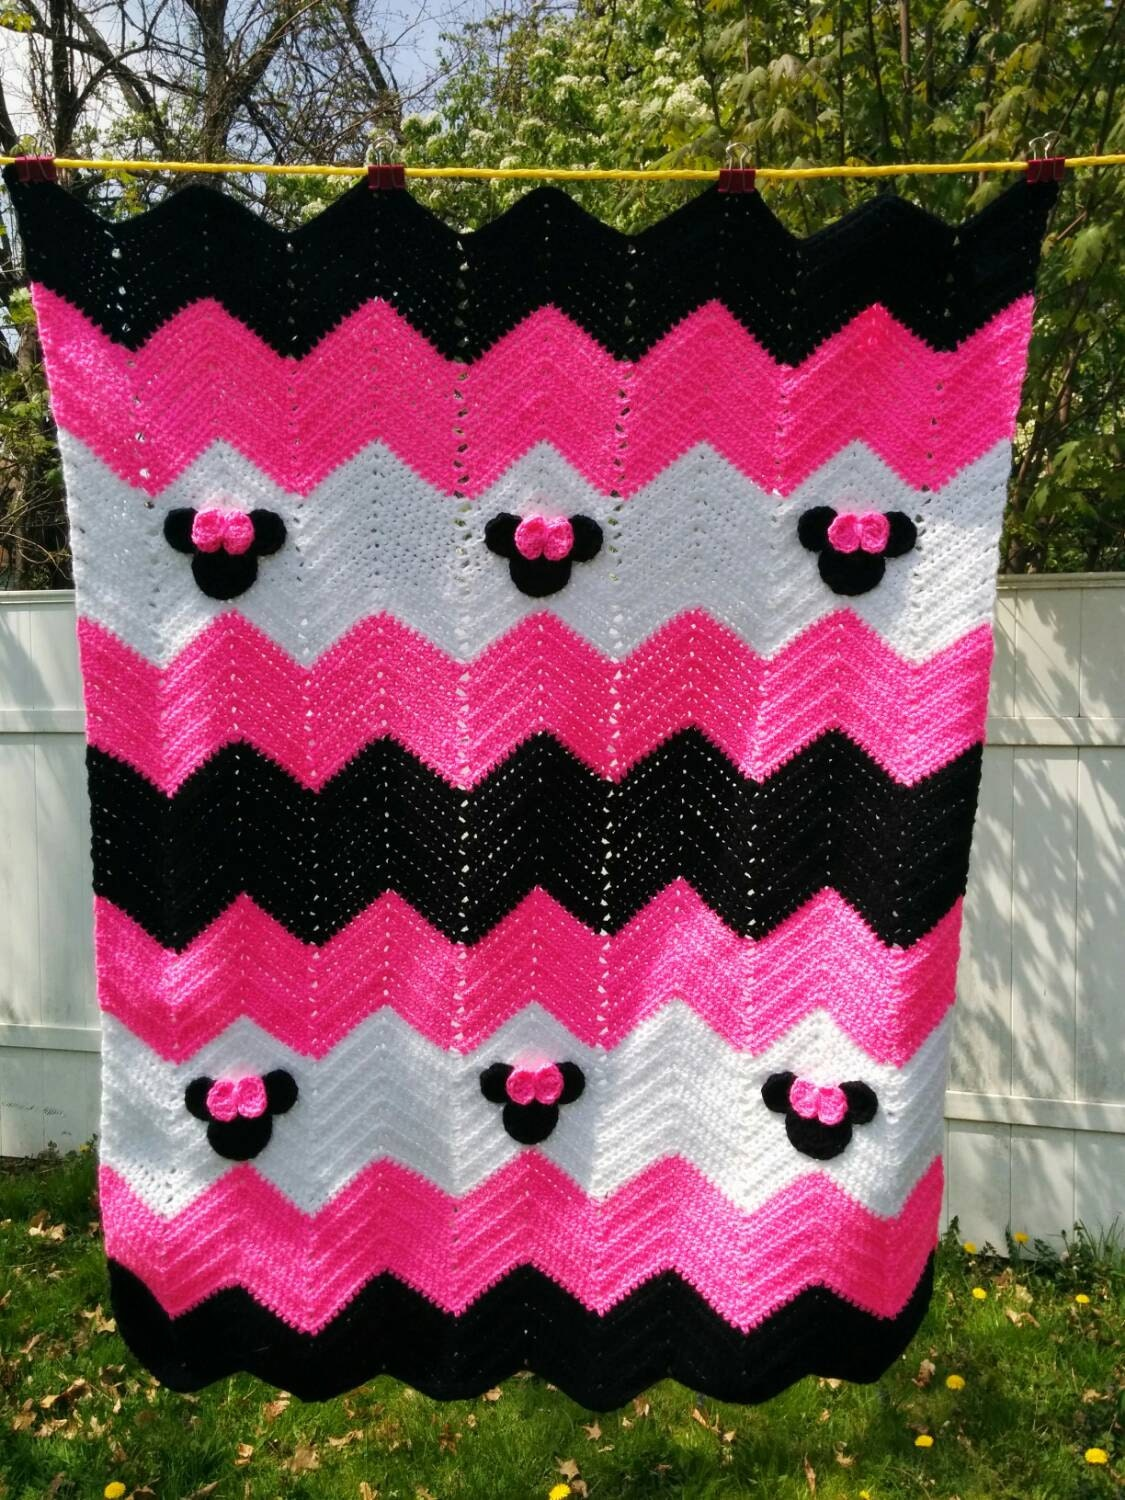 Crochet Pattern For Minnie Mouse Blanket : Minnie Mouse or Mickey Mouse Inspired Blanket 33x43 inches